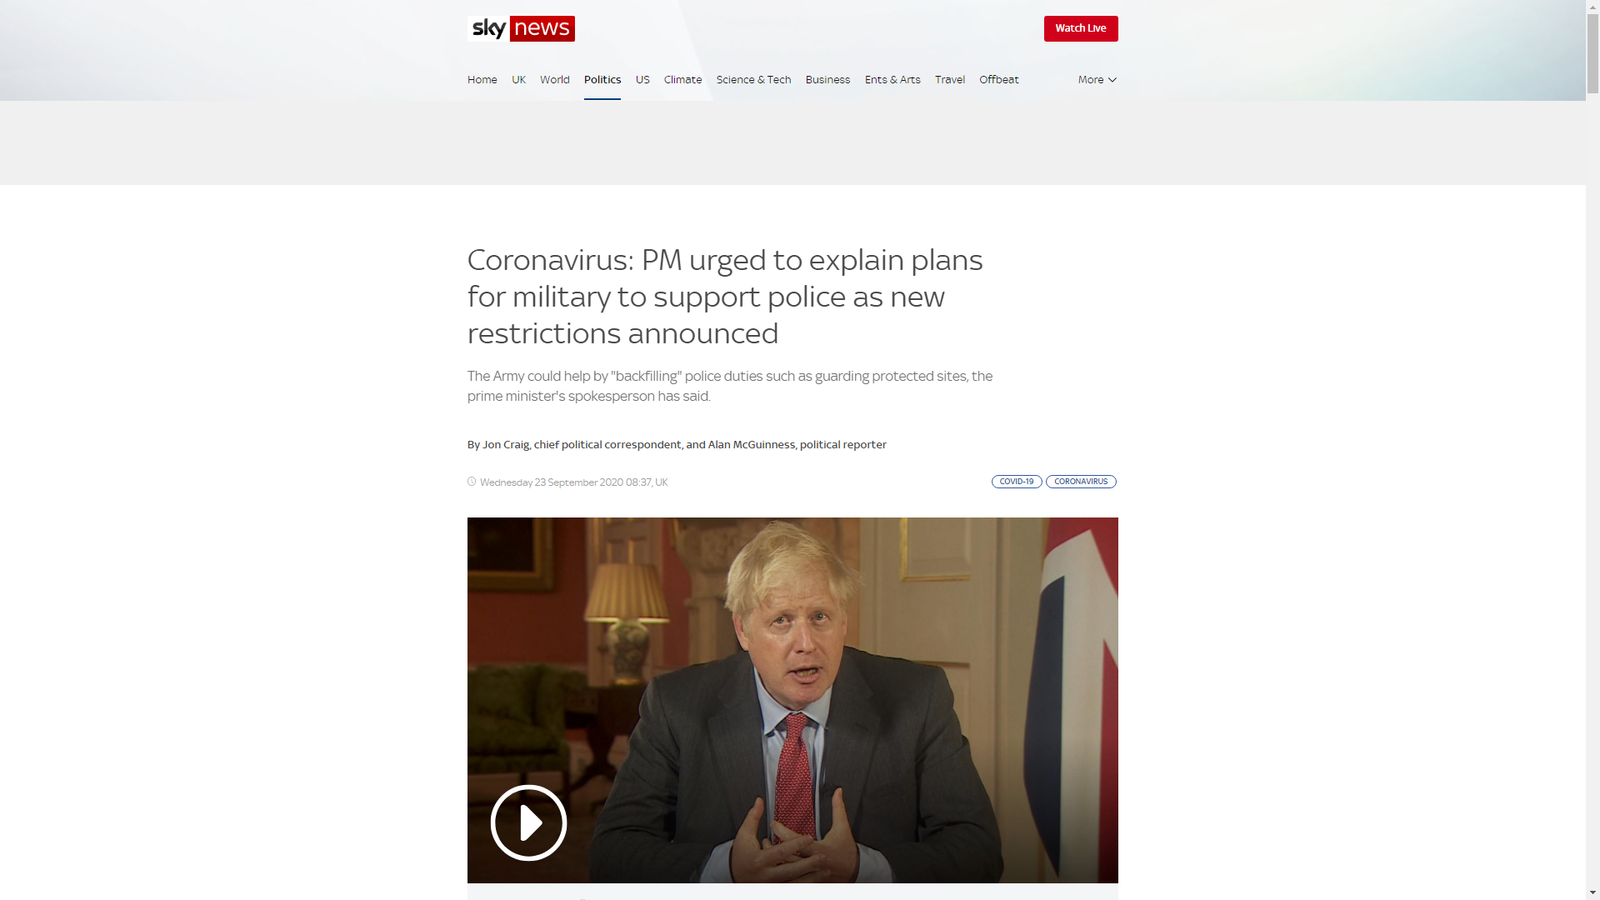 https://news.sky.com/story/coronavirus-pm-urged-to-explain-plans-for-military-to-support-police-as-new-restrictions-announced-12079084